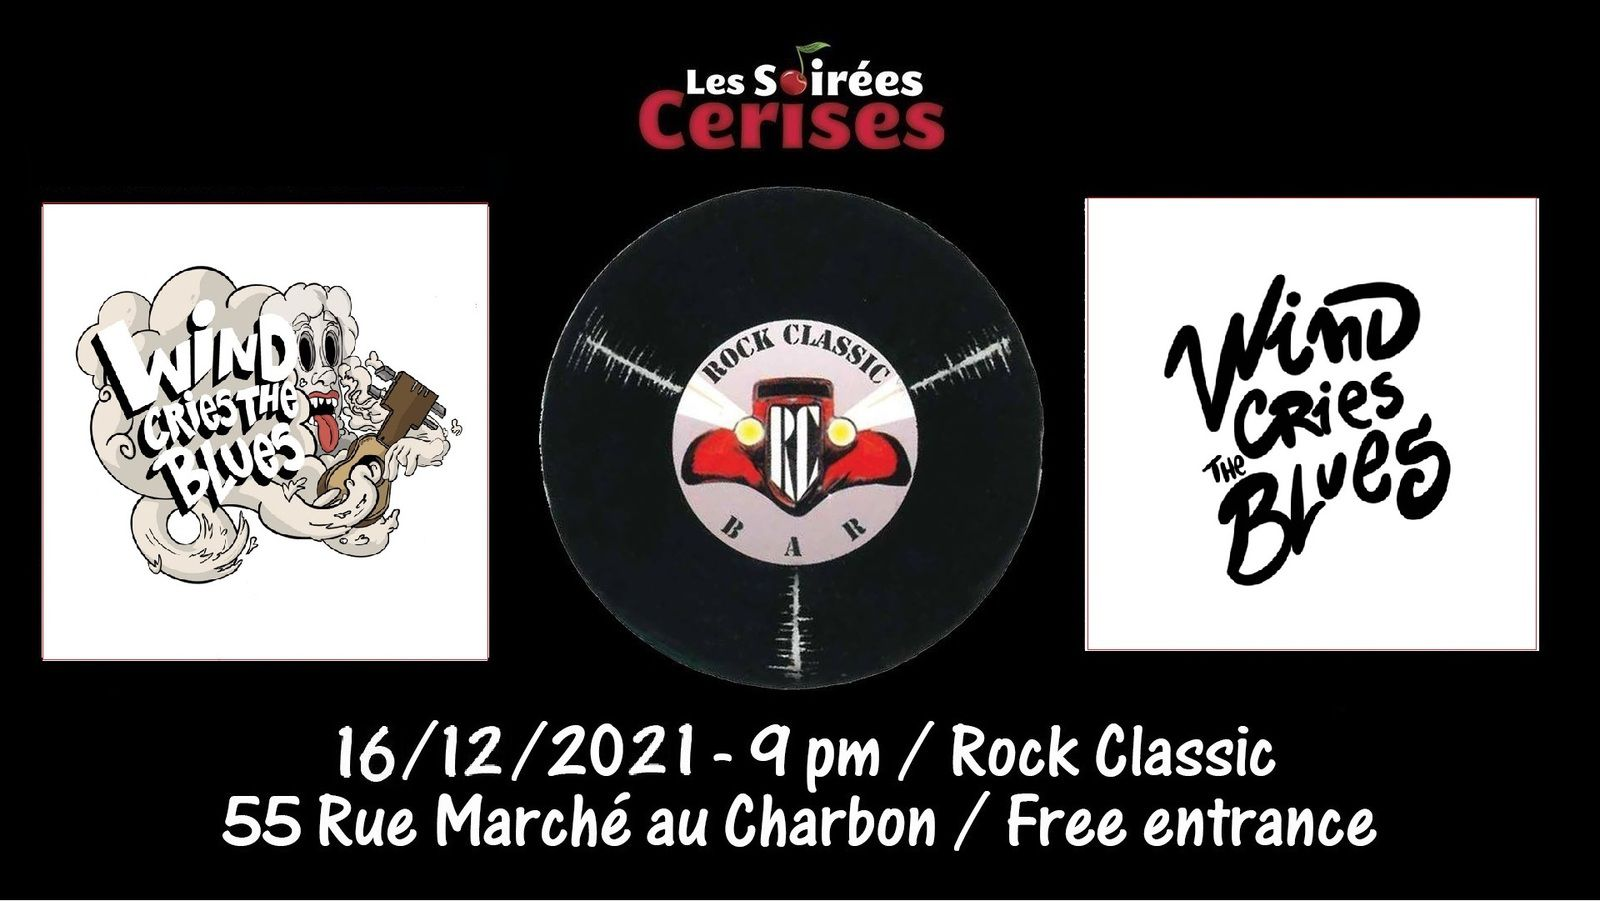 🎵 Wind cries the blues @ Rock Classic - 16/12/2021